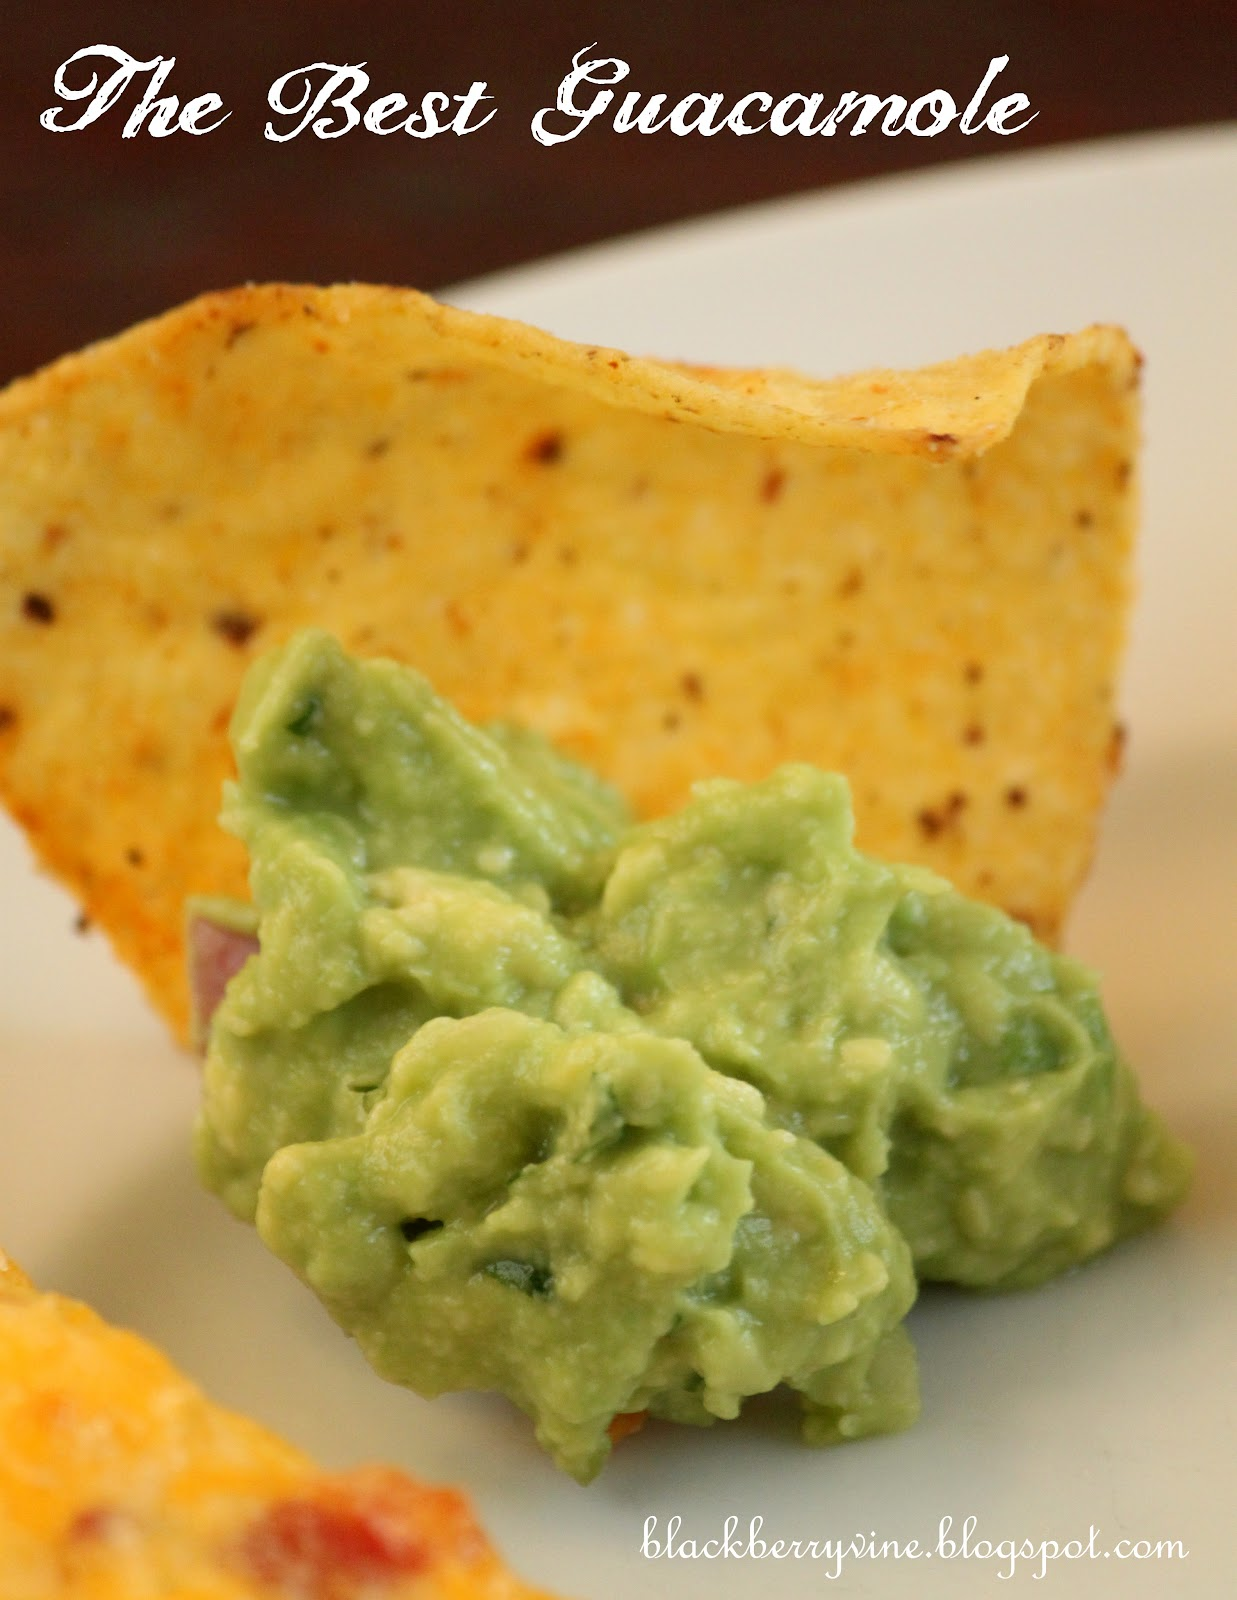 The Best Guacamole, EVER!